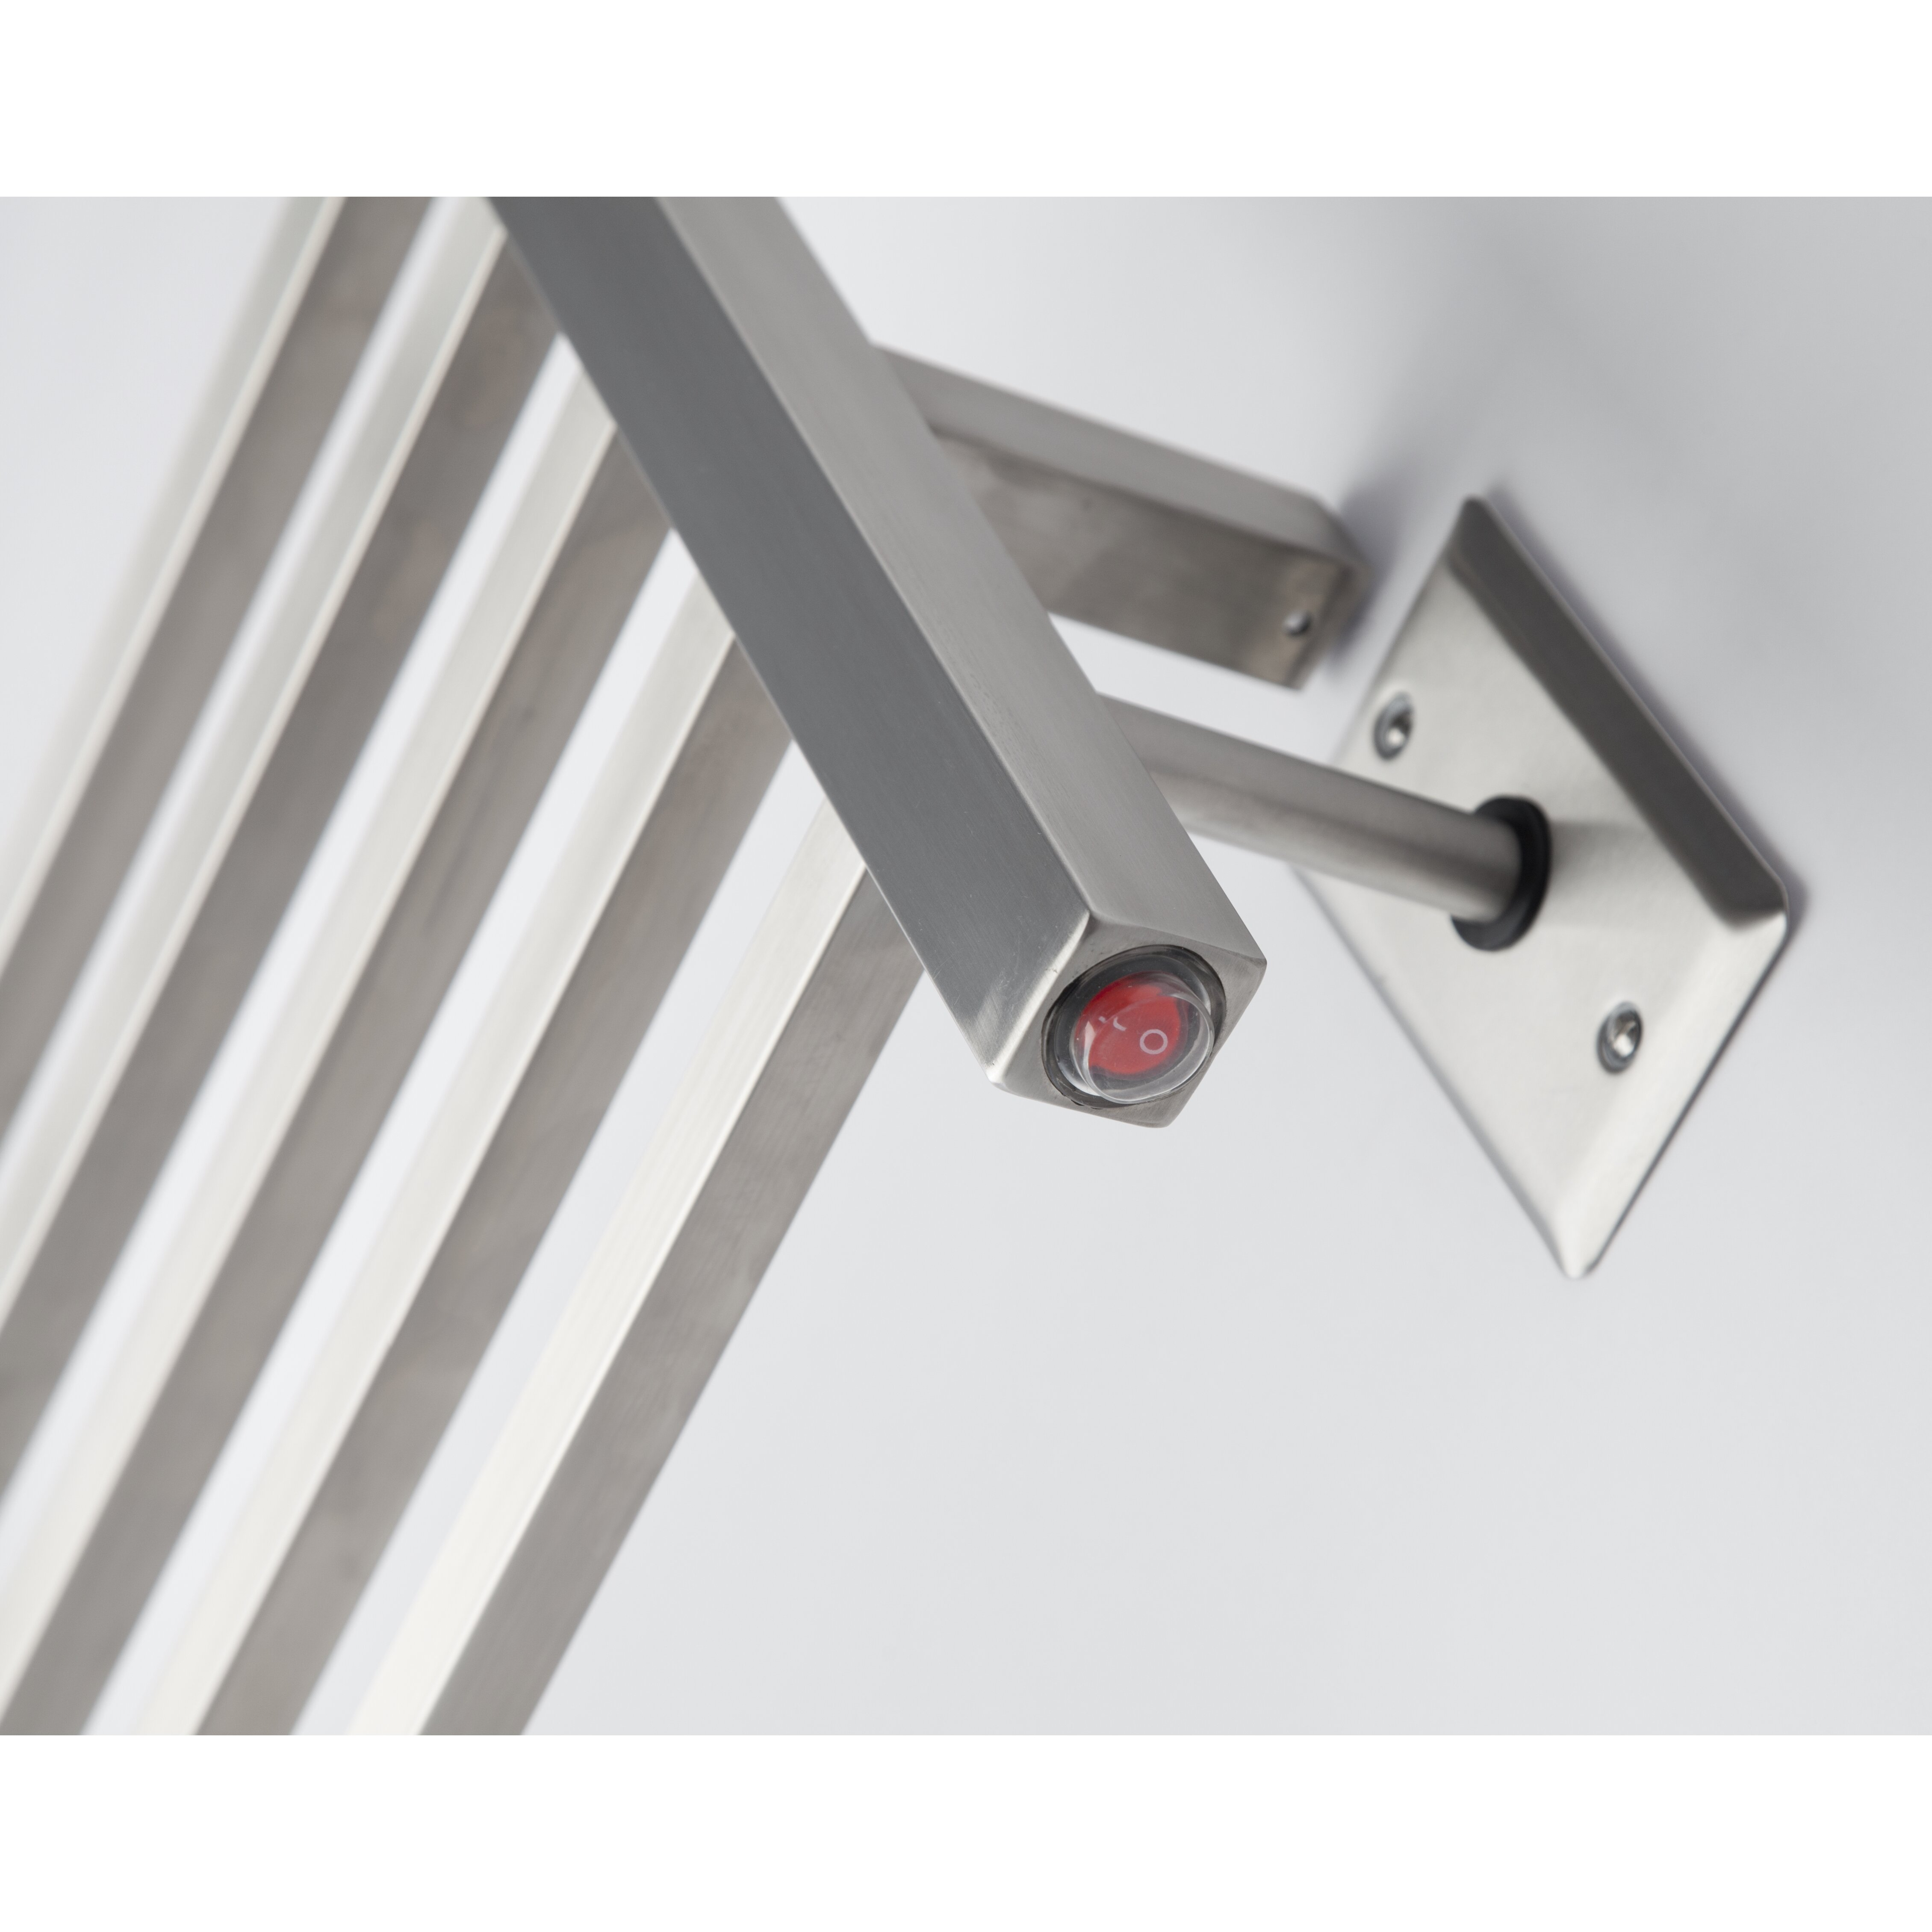 Amba Radiant Wall Mount Hardwired Electric Towel Warmer. Amba Radiant Wall Mount Hardwired Electric Towel Warmer   Reviews